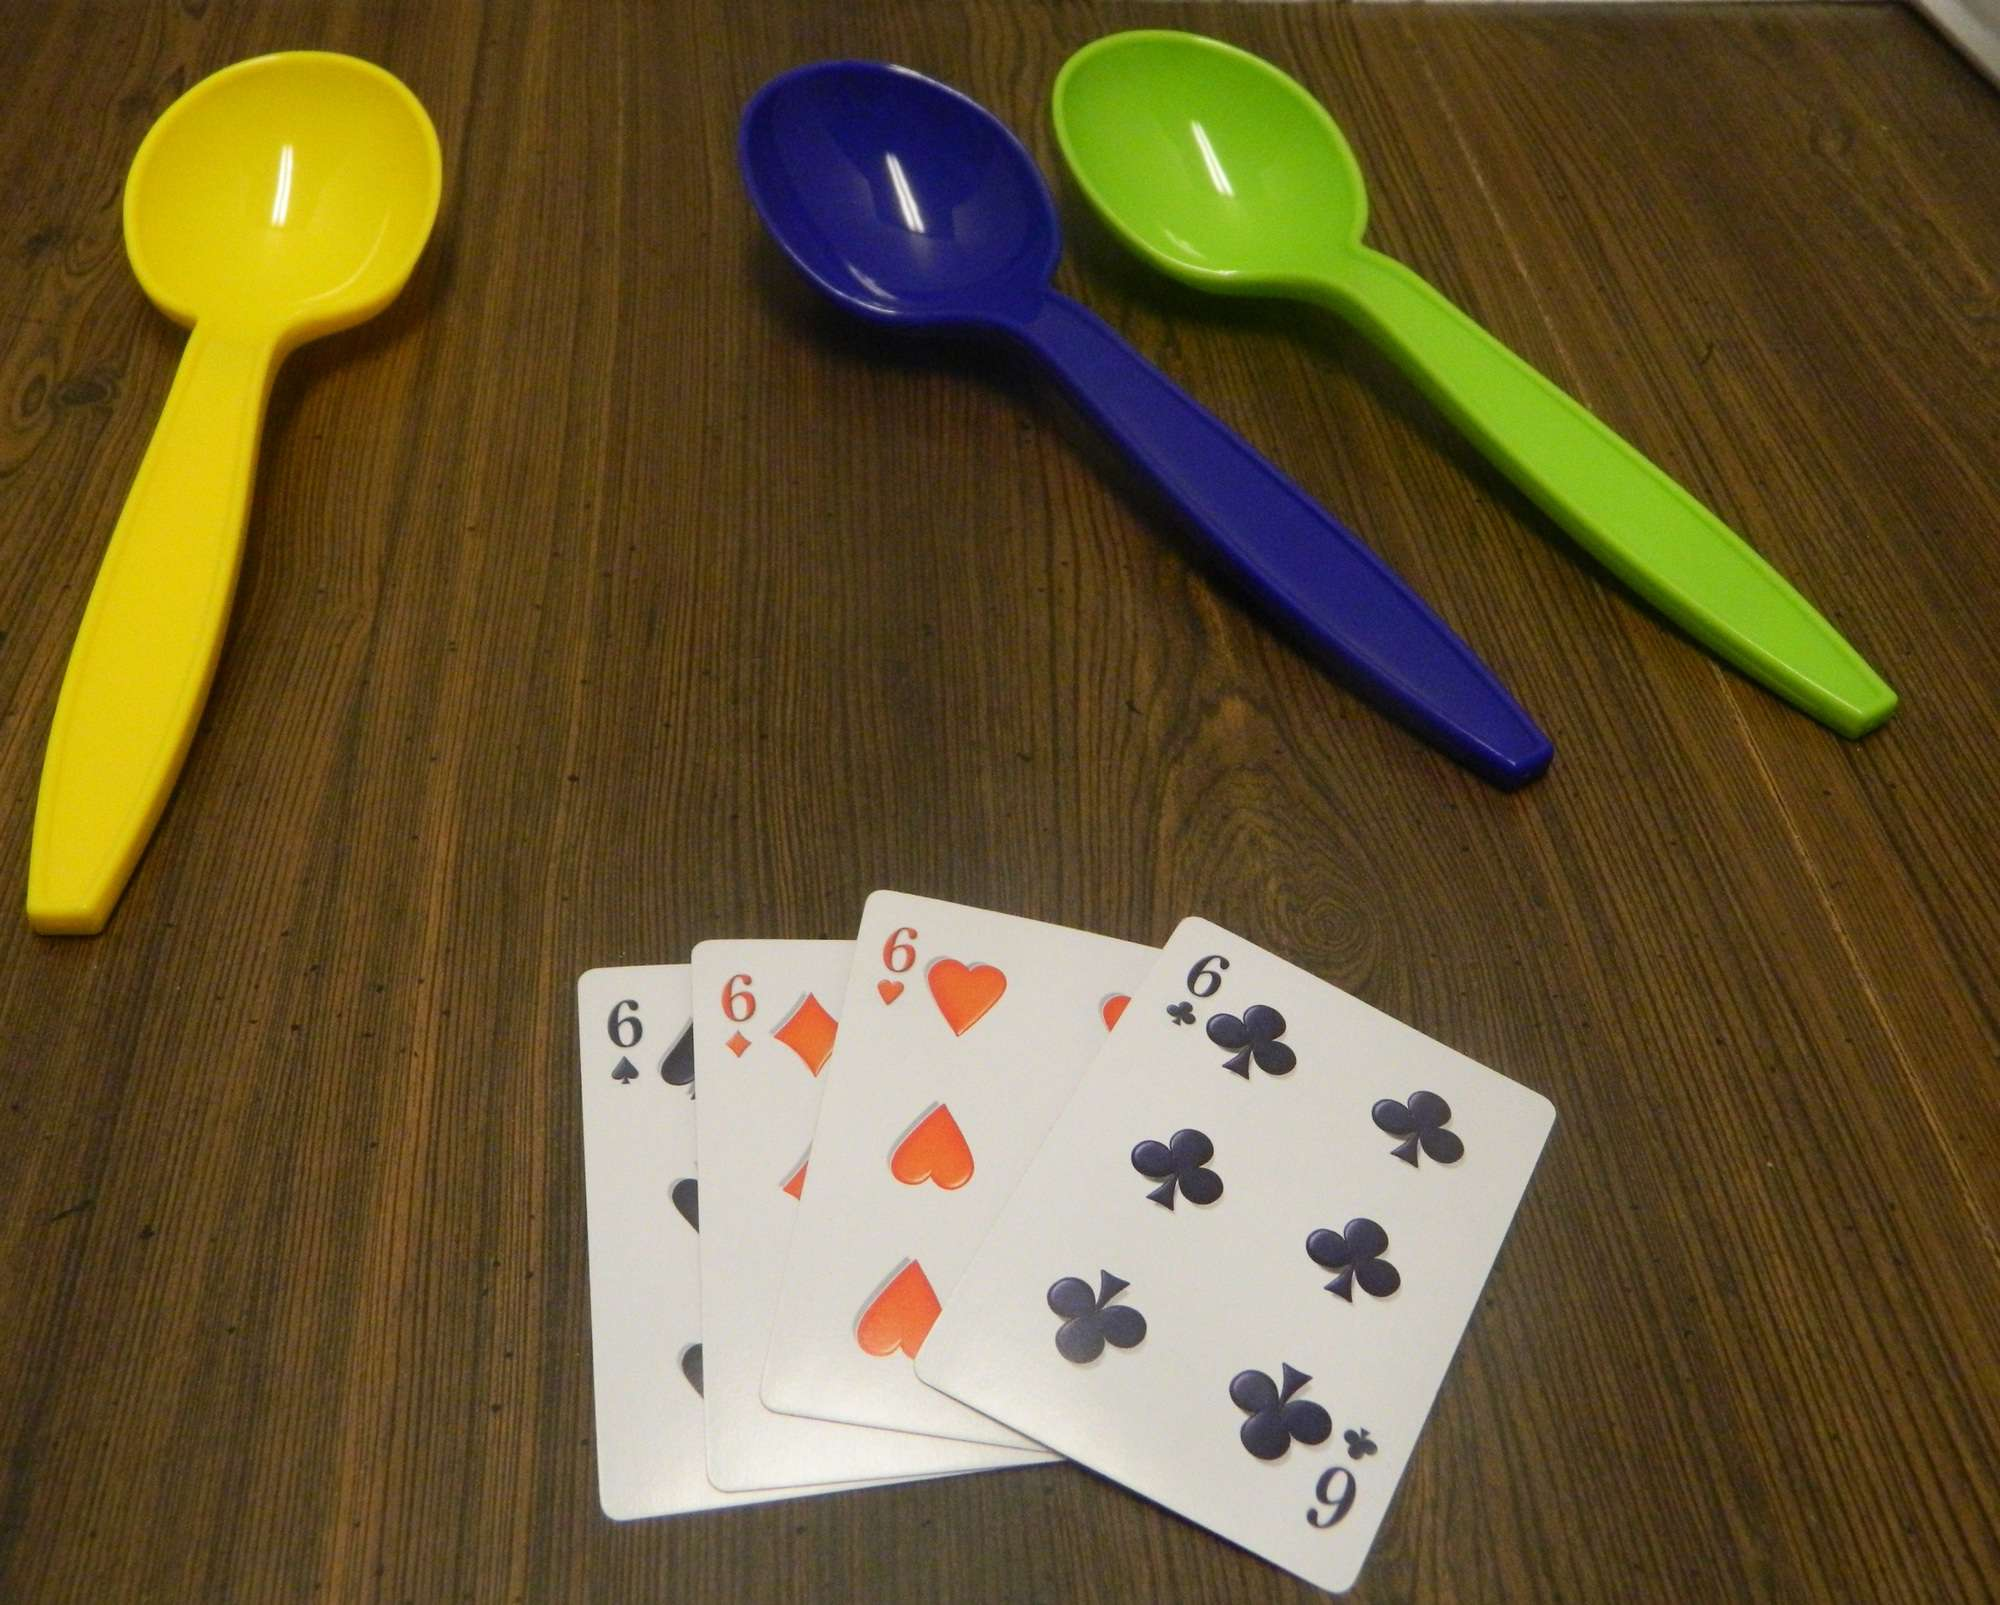 Giant Spoons Board Game Review And Instructions Geeky Hobbies